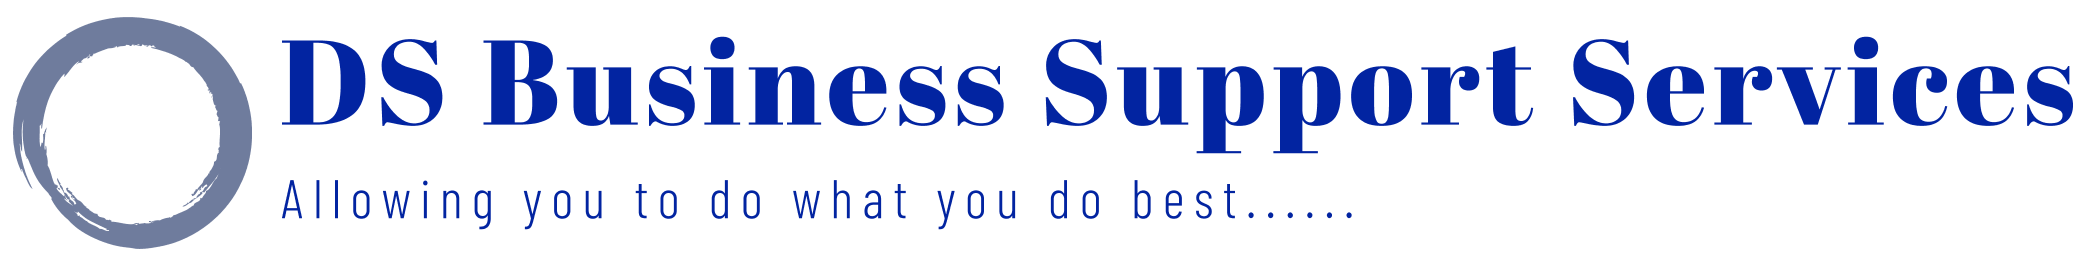 DS Business Support Services